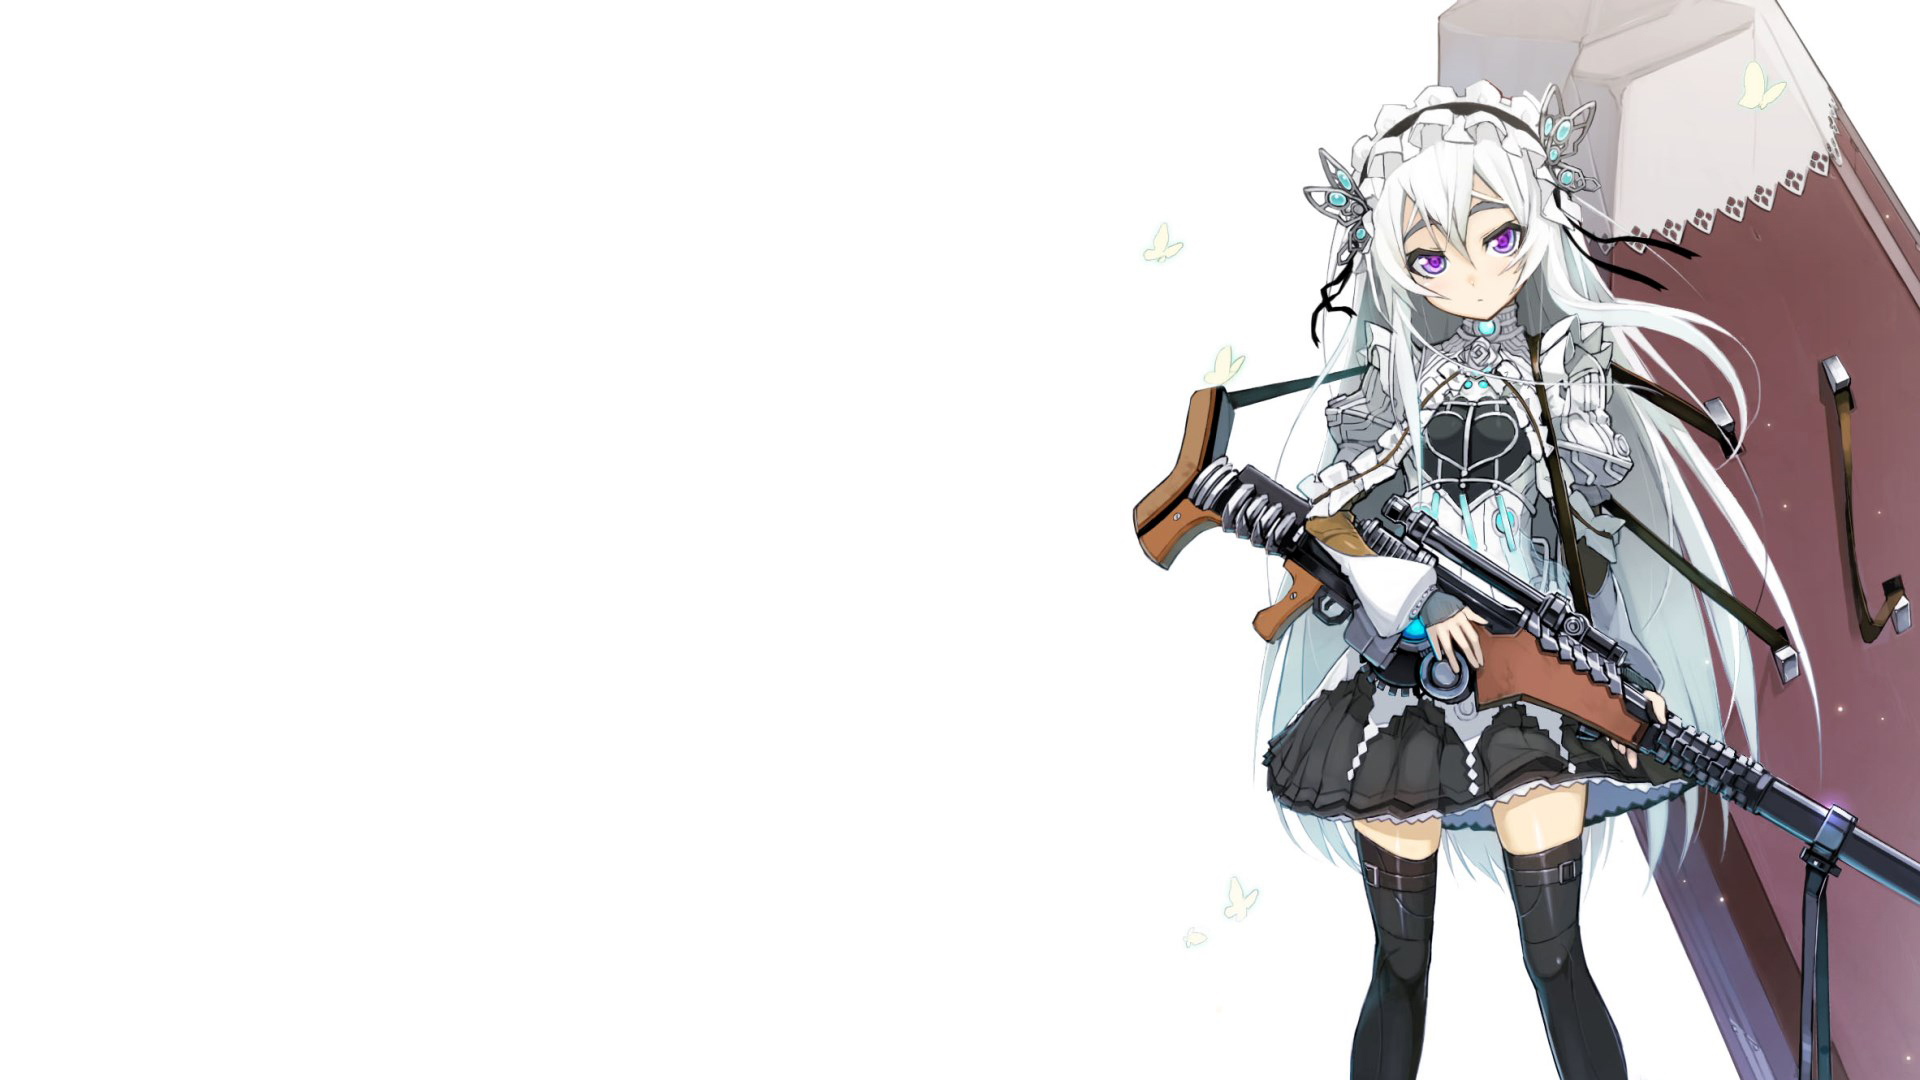 Chaika  The Coffin Princess  HD Wallpaper Background Image 1920x1080